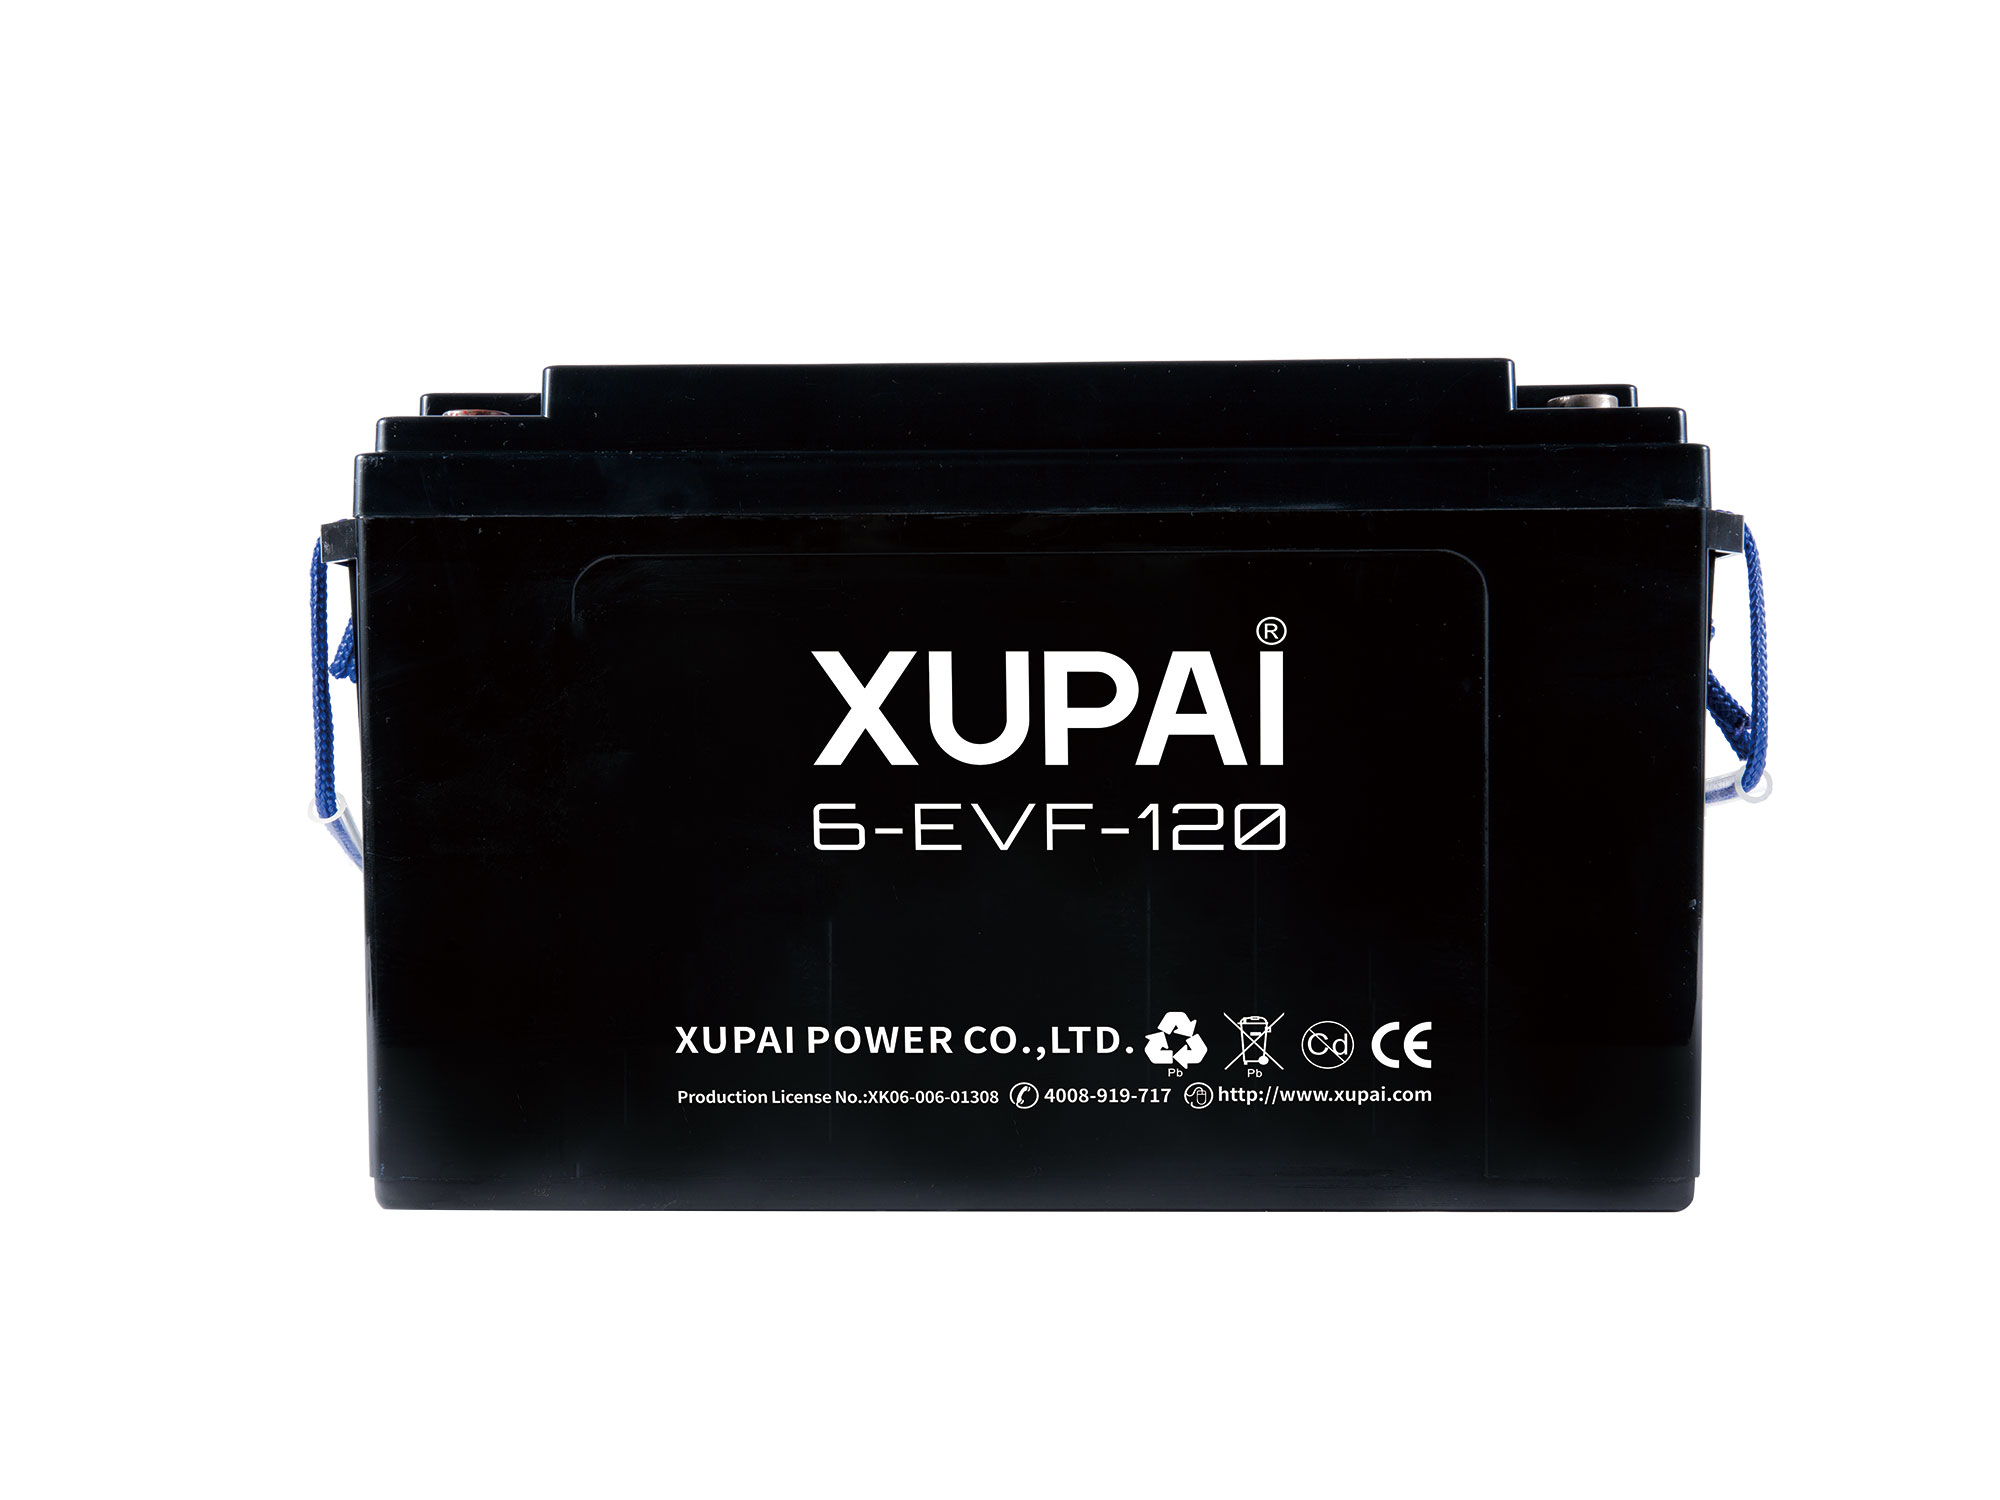 XUPAI 6-EVF-120 Lead acid batetry, electric bicycle battery